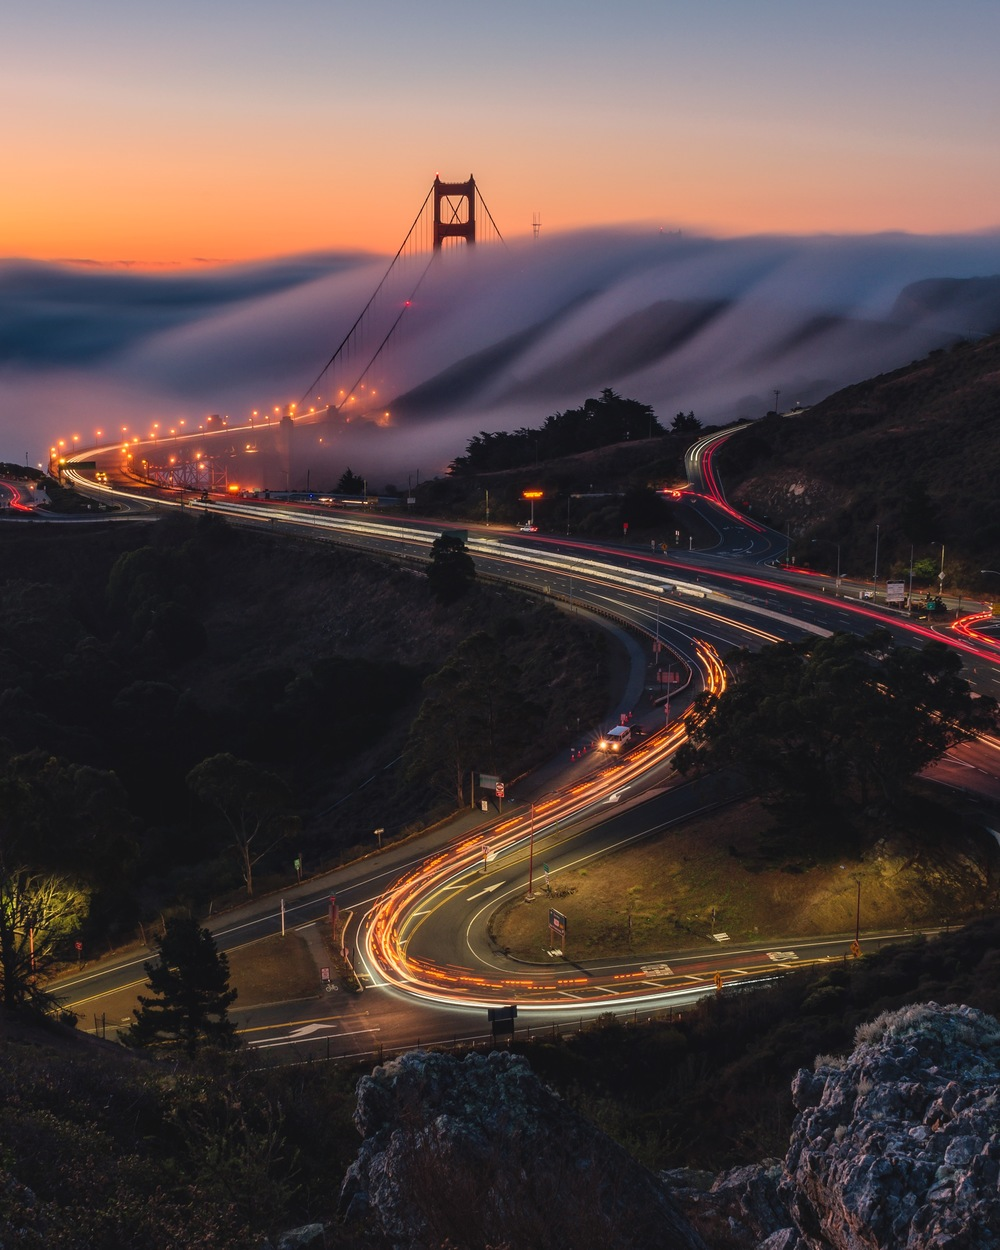 An amazing sunrise witnessed from Marin Headlands